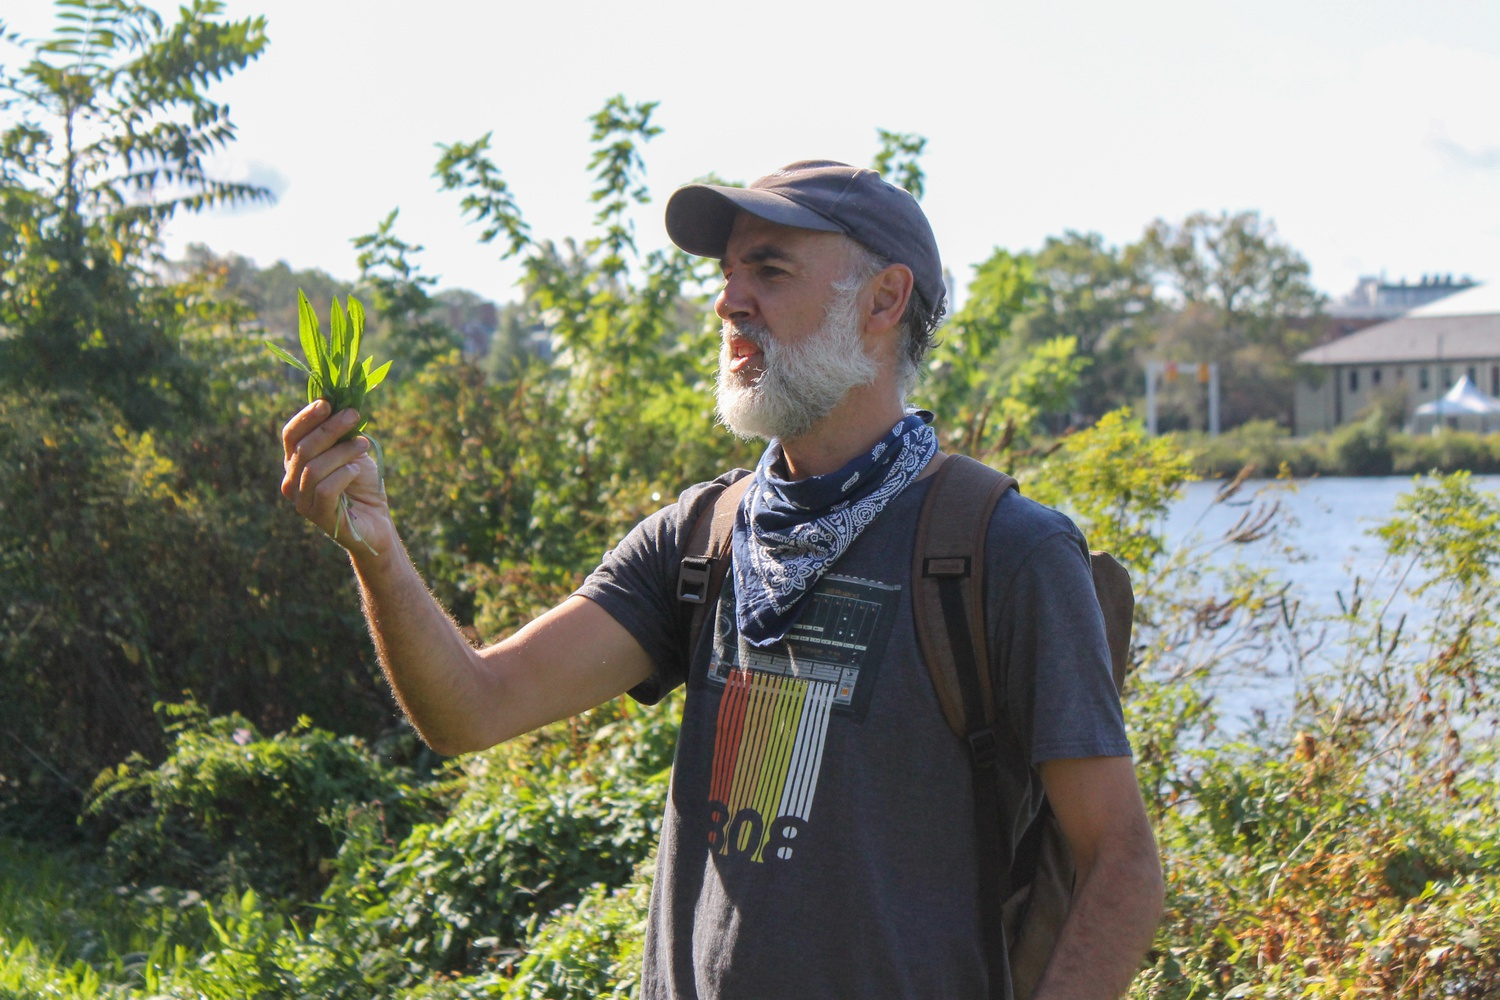 David L. Craft holds up part of a narrow-leaf plantain plant by the Charles River. Craft lead an urban plant foraging tour around Harvard, identifying a variety of different plants for participants.